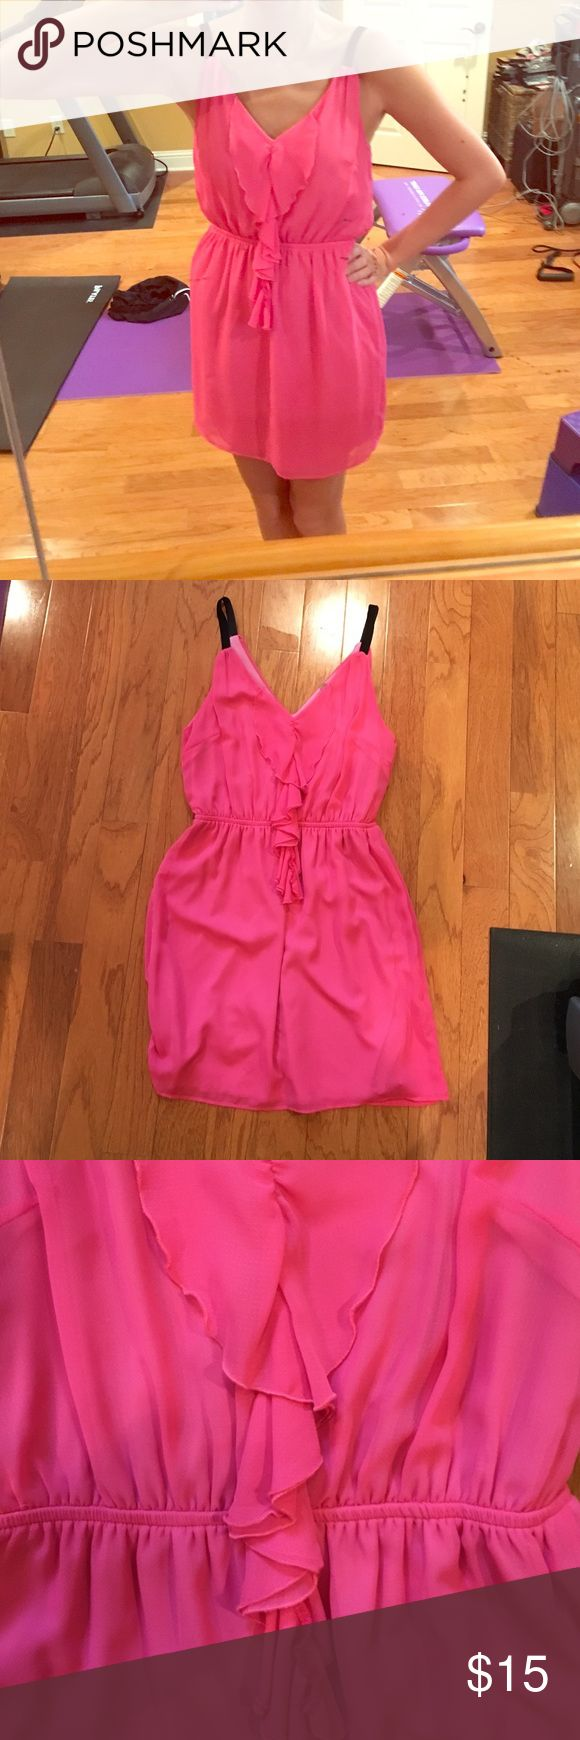 Super cute hot pink dress! Size medium! Super cute hot pink dress!                                         Brand: peppermint                                                            Size: Medium                                                             Condition: great                                                             Perfect for a casual event or formal! Peppermint  Dresses Mini